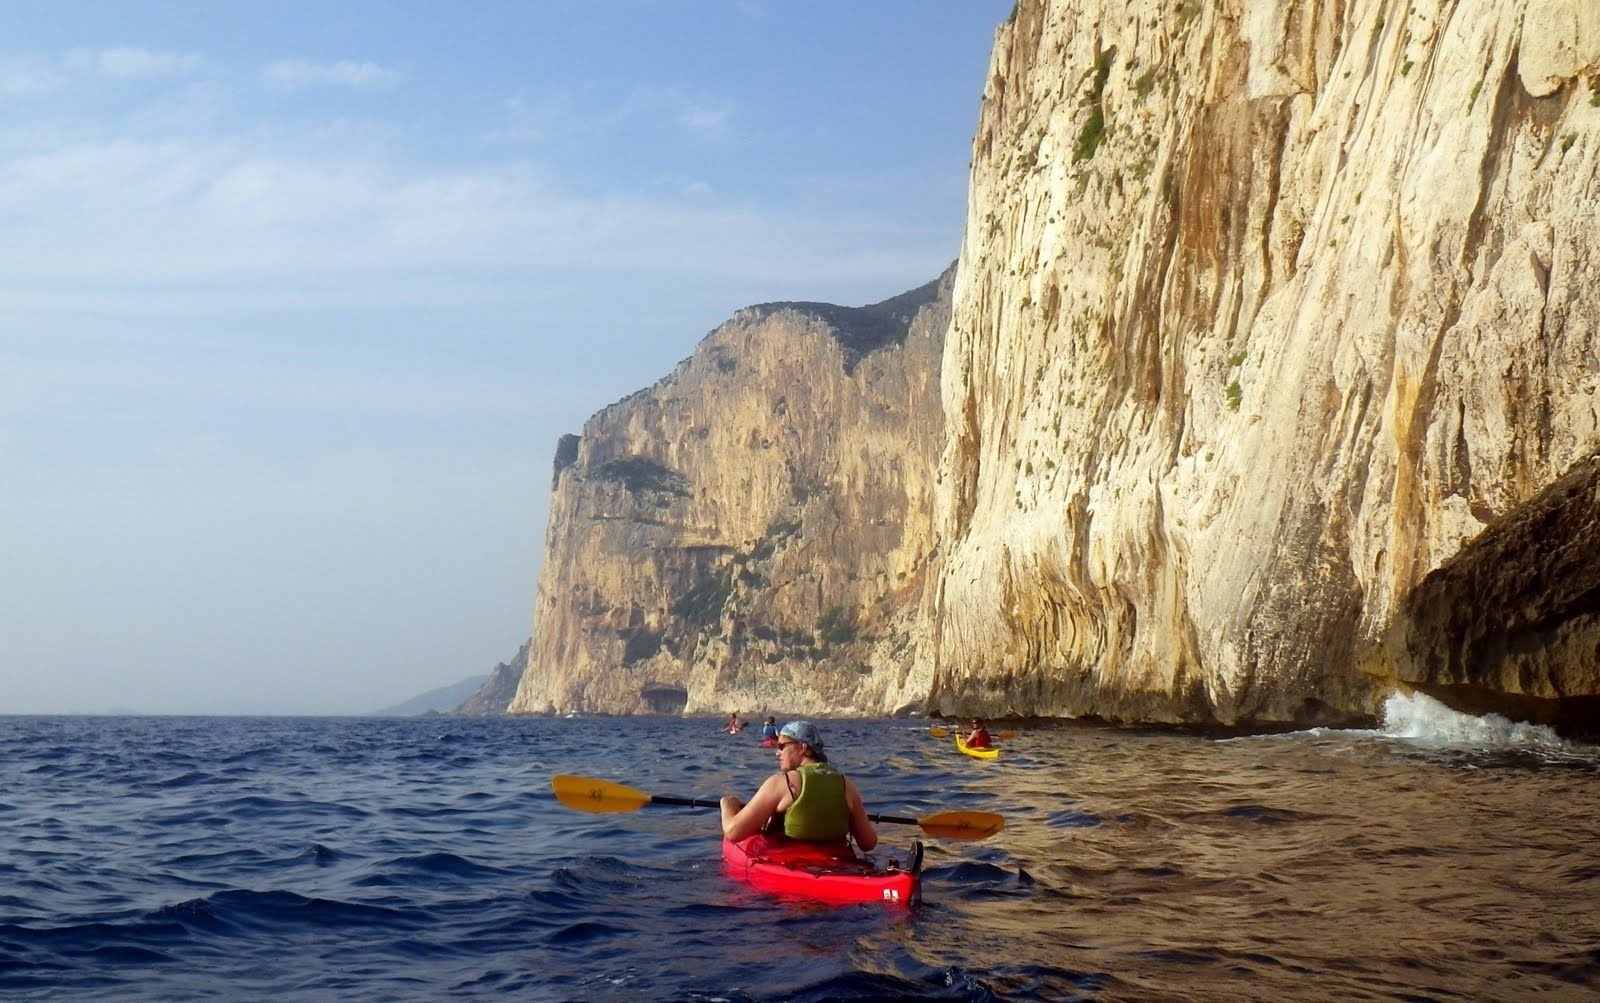 Kayak 8.jpg - Sardinia - Daily Kayaking Trips - Kayaking